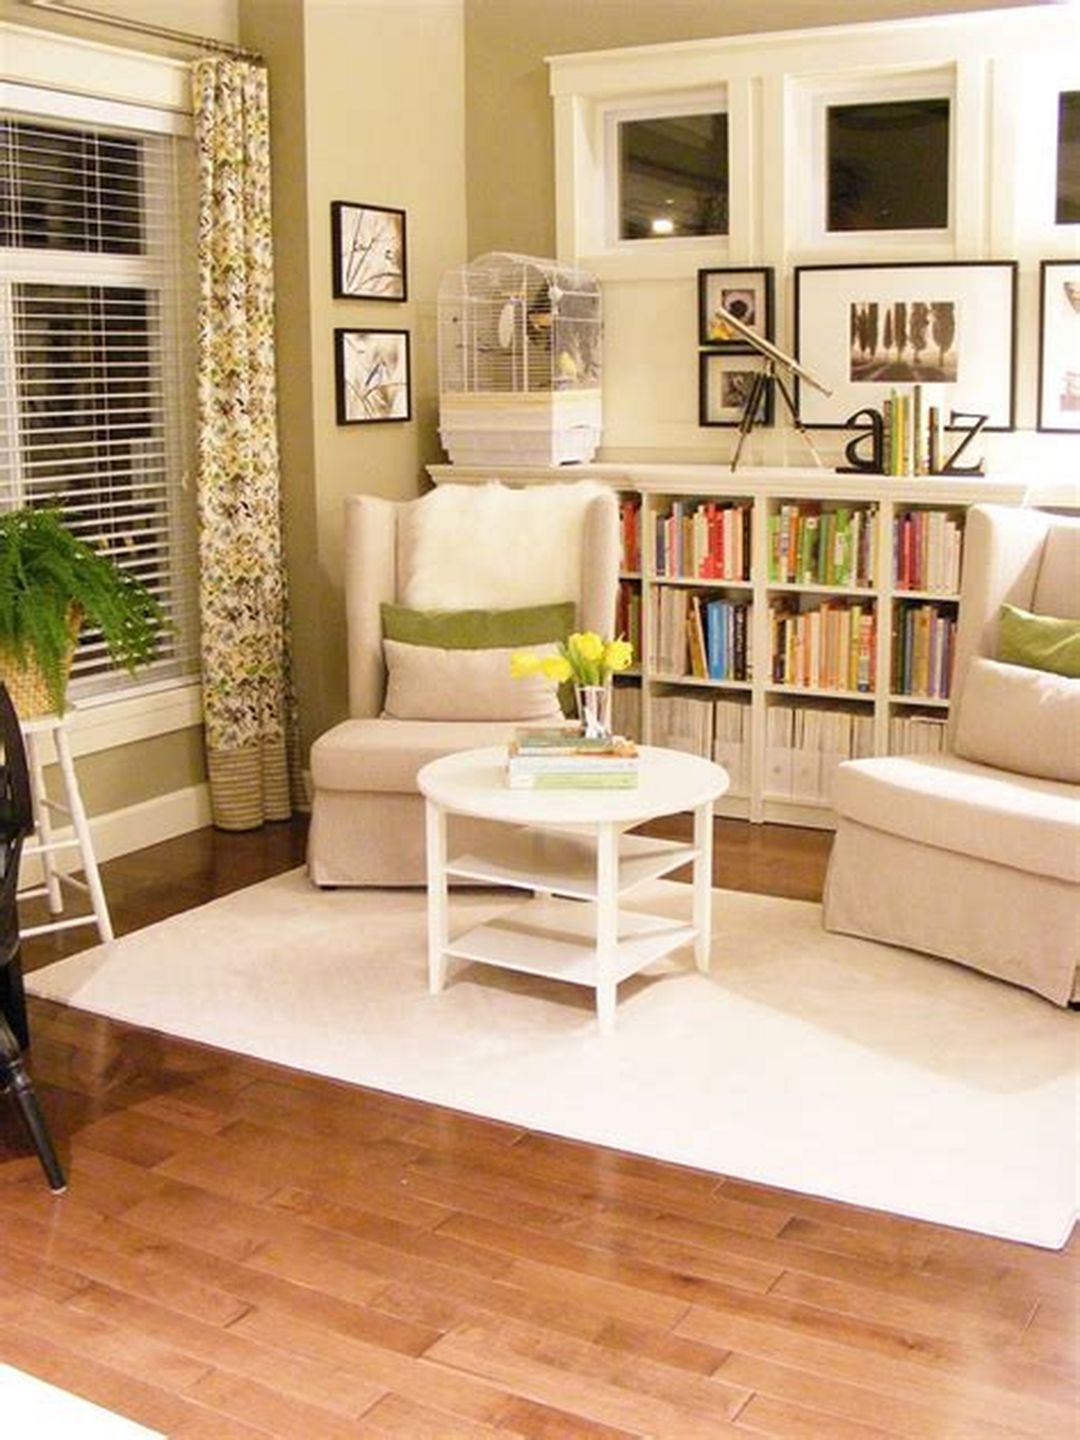 Top 20 Small Home Library Design Ideas For Inspiration With Images Home Library Rooms Small Home Libraries Home Library Design